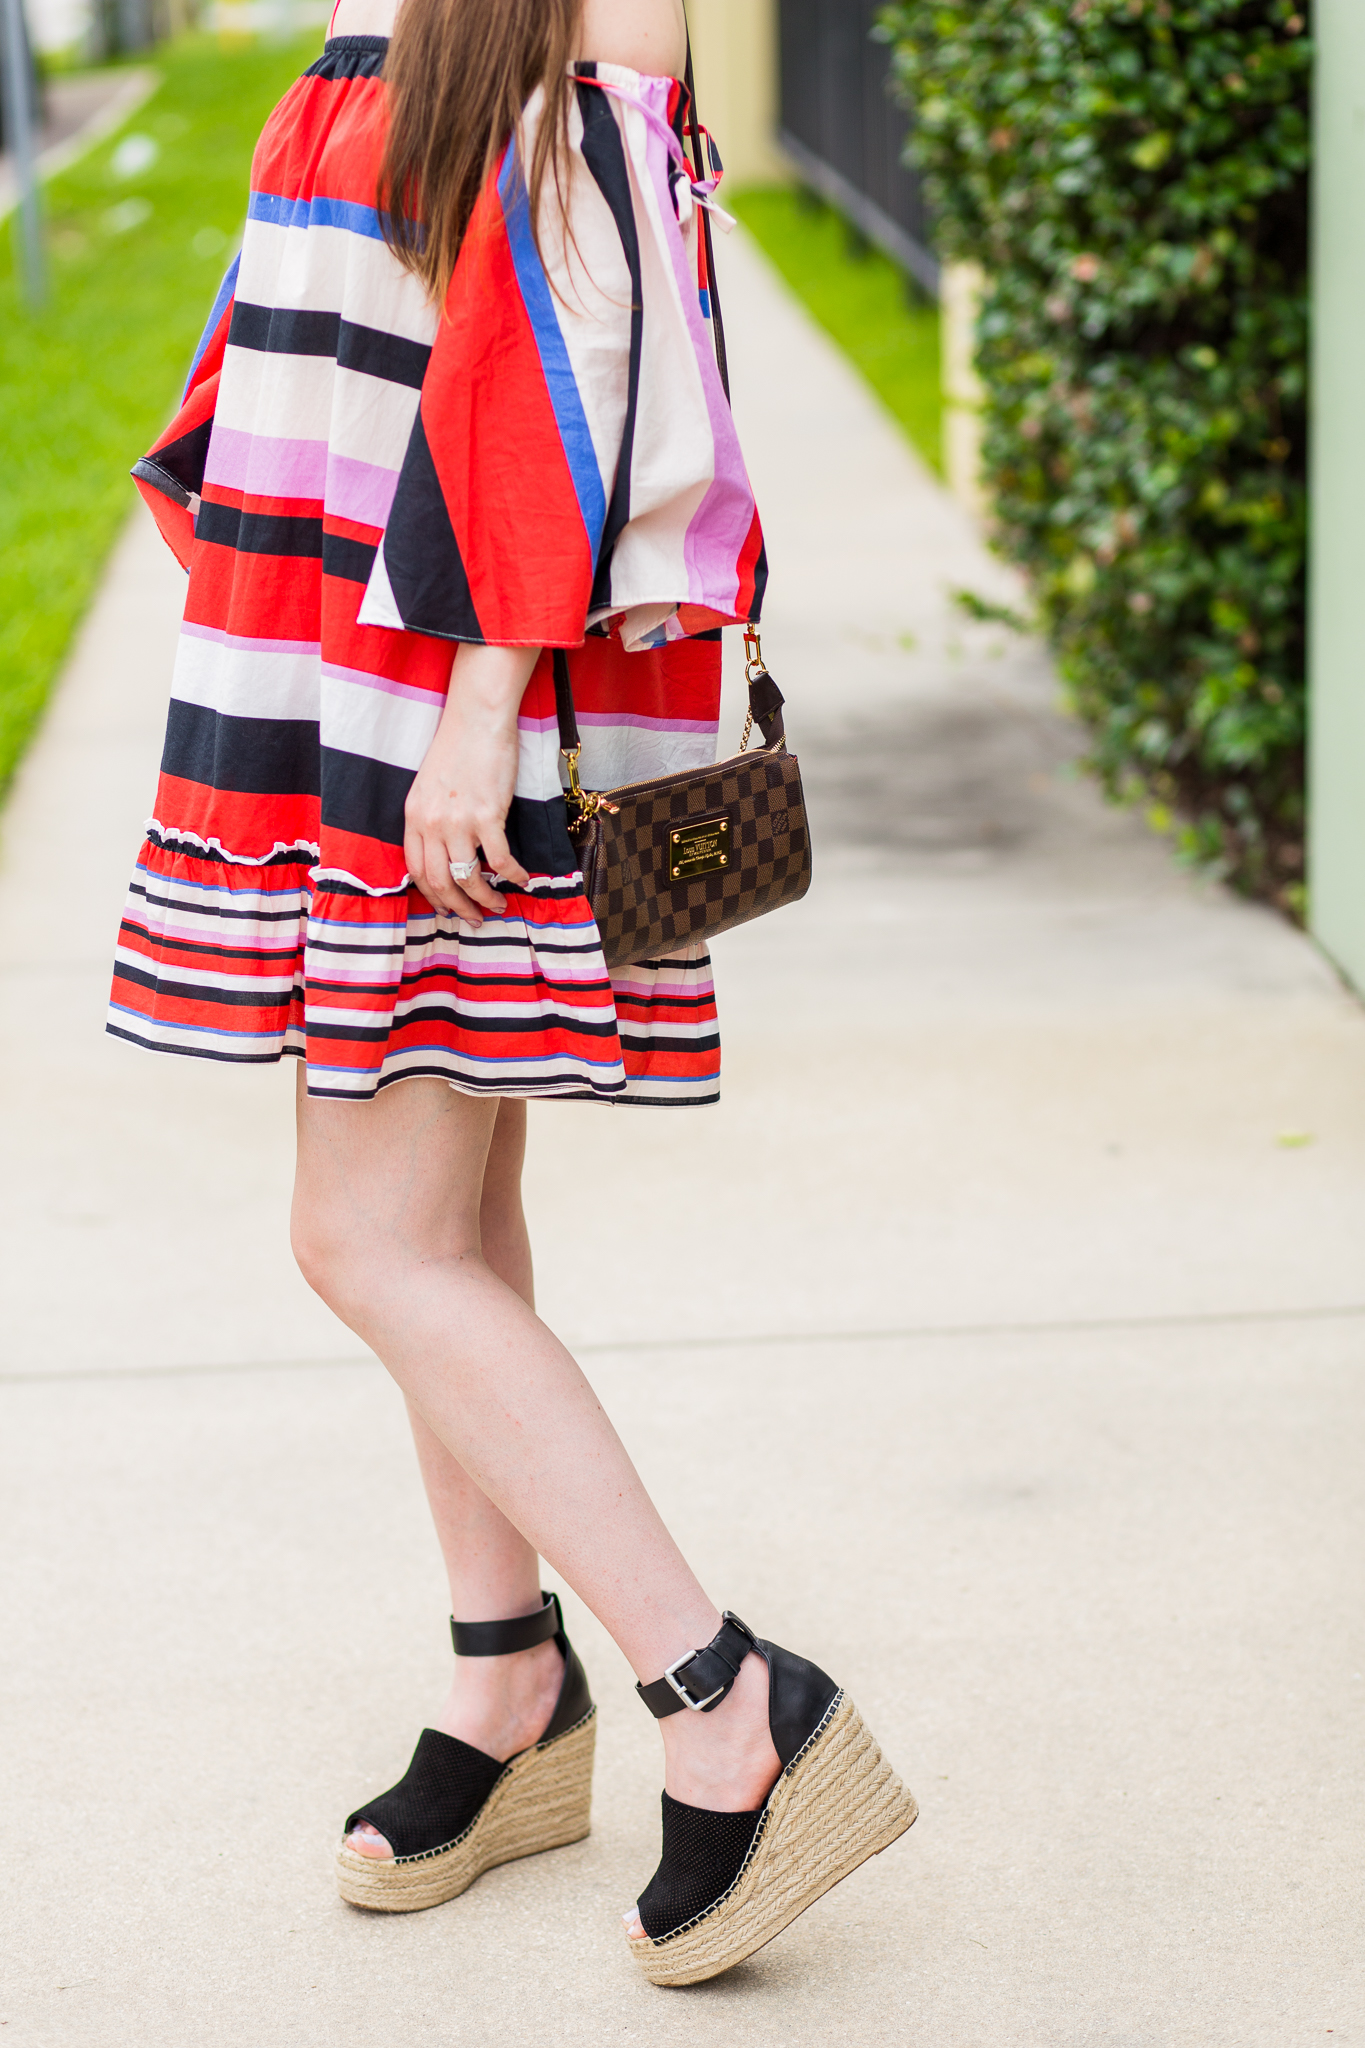 marc fisher black wedges, nicholas amalfi dress, n/nicholas, striped dress, multicolor striped dress, summer dress, casual, red and black dress